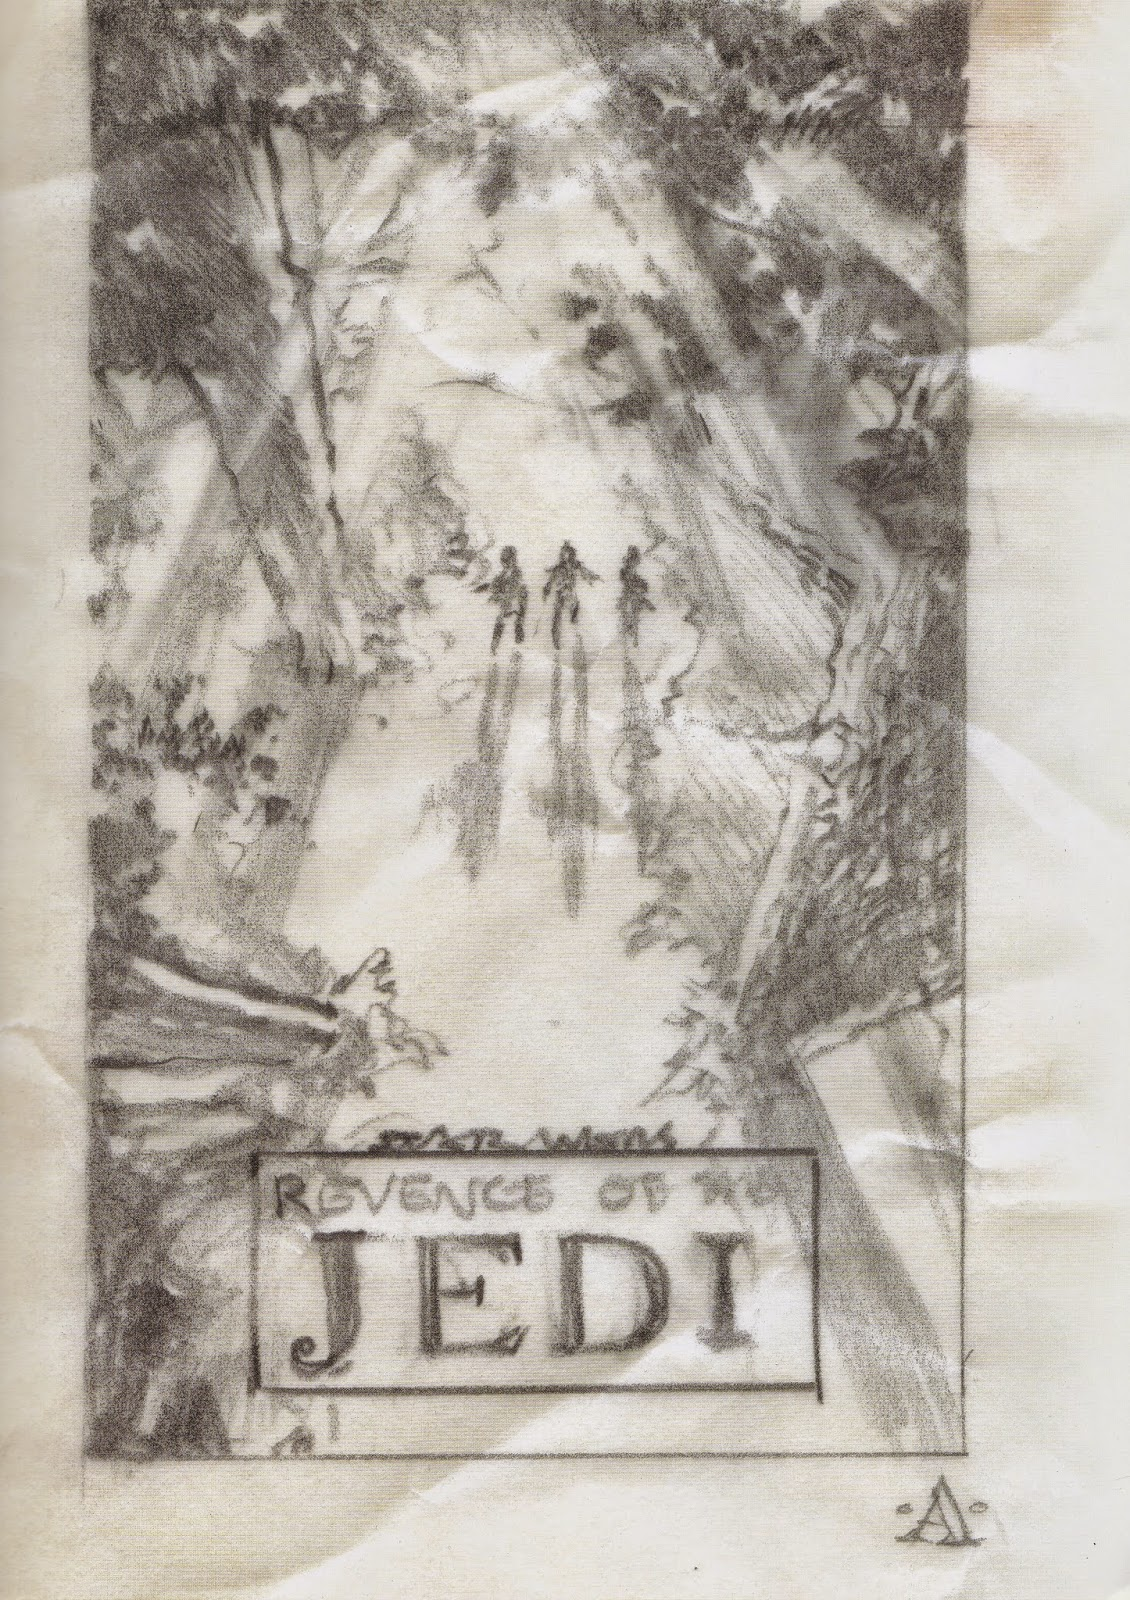 revenge of the jedi concept artwork